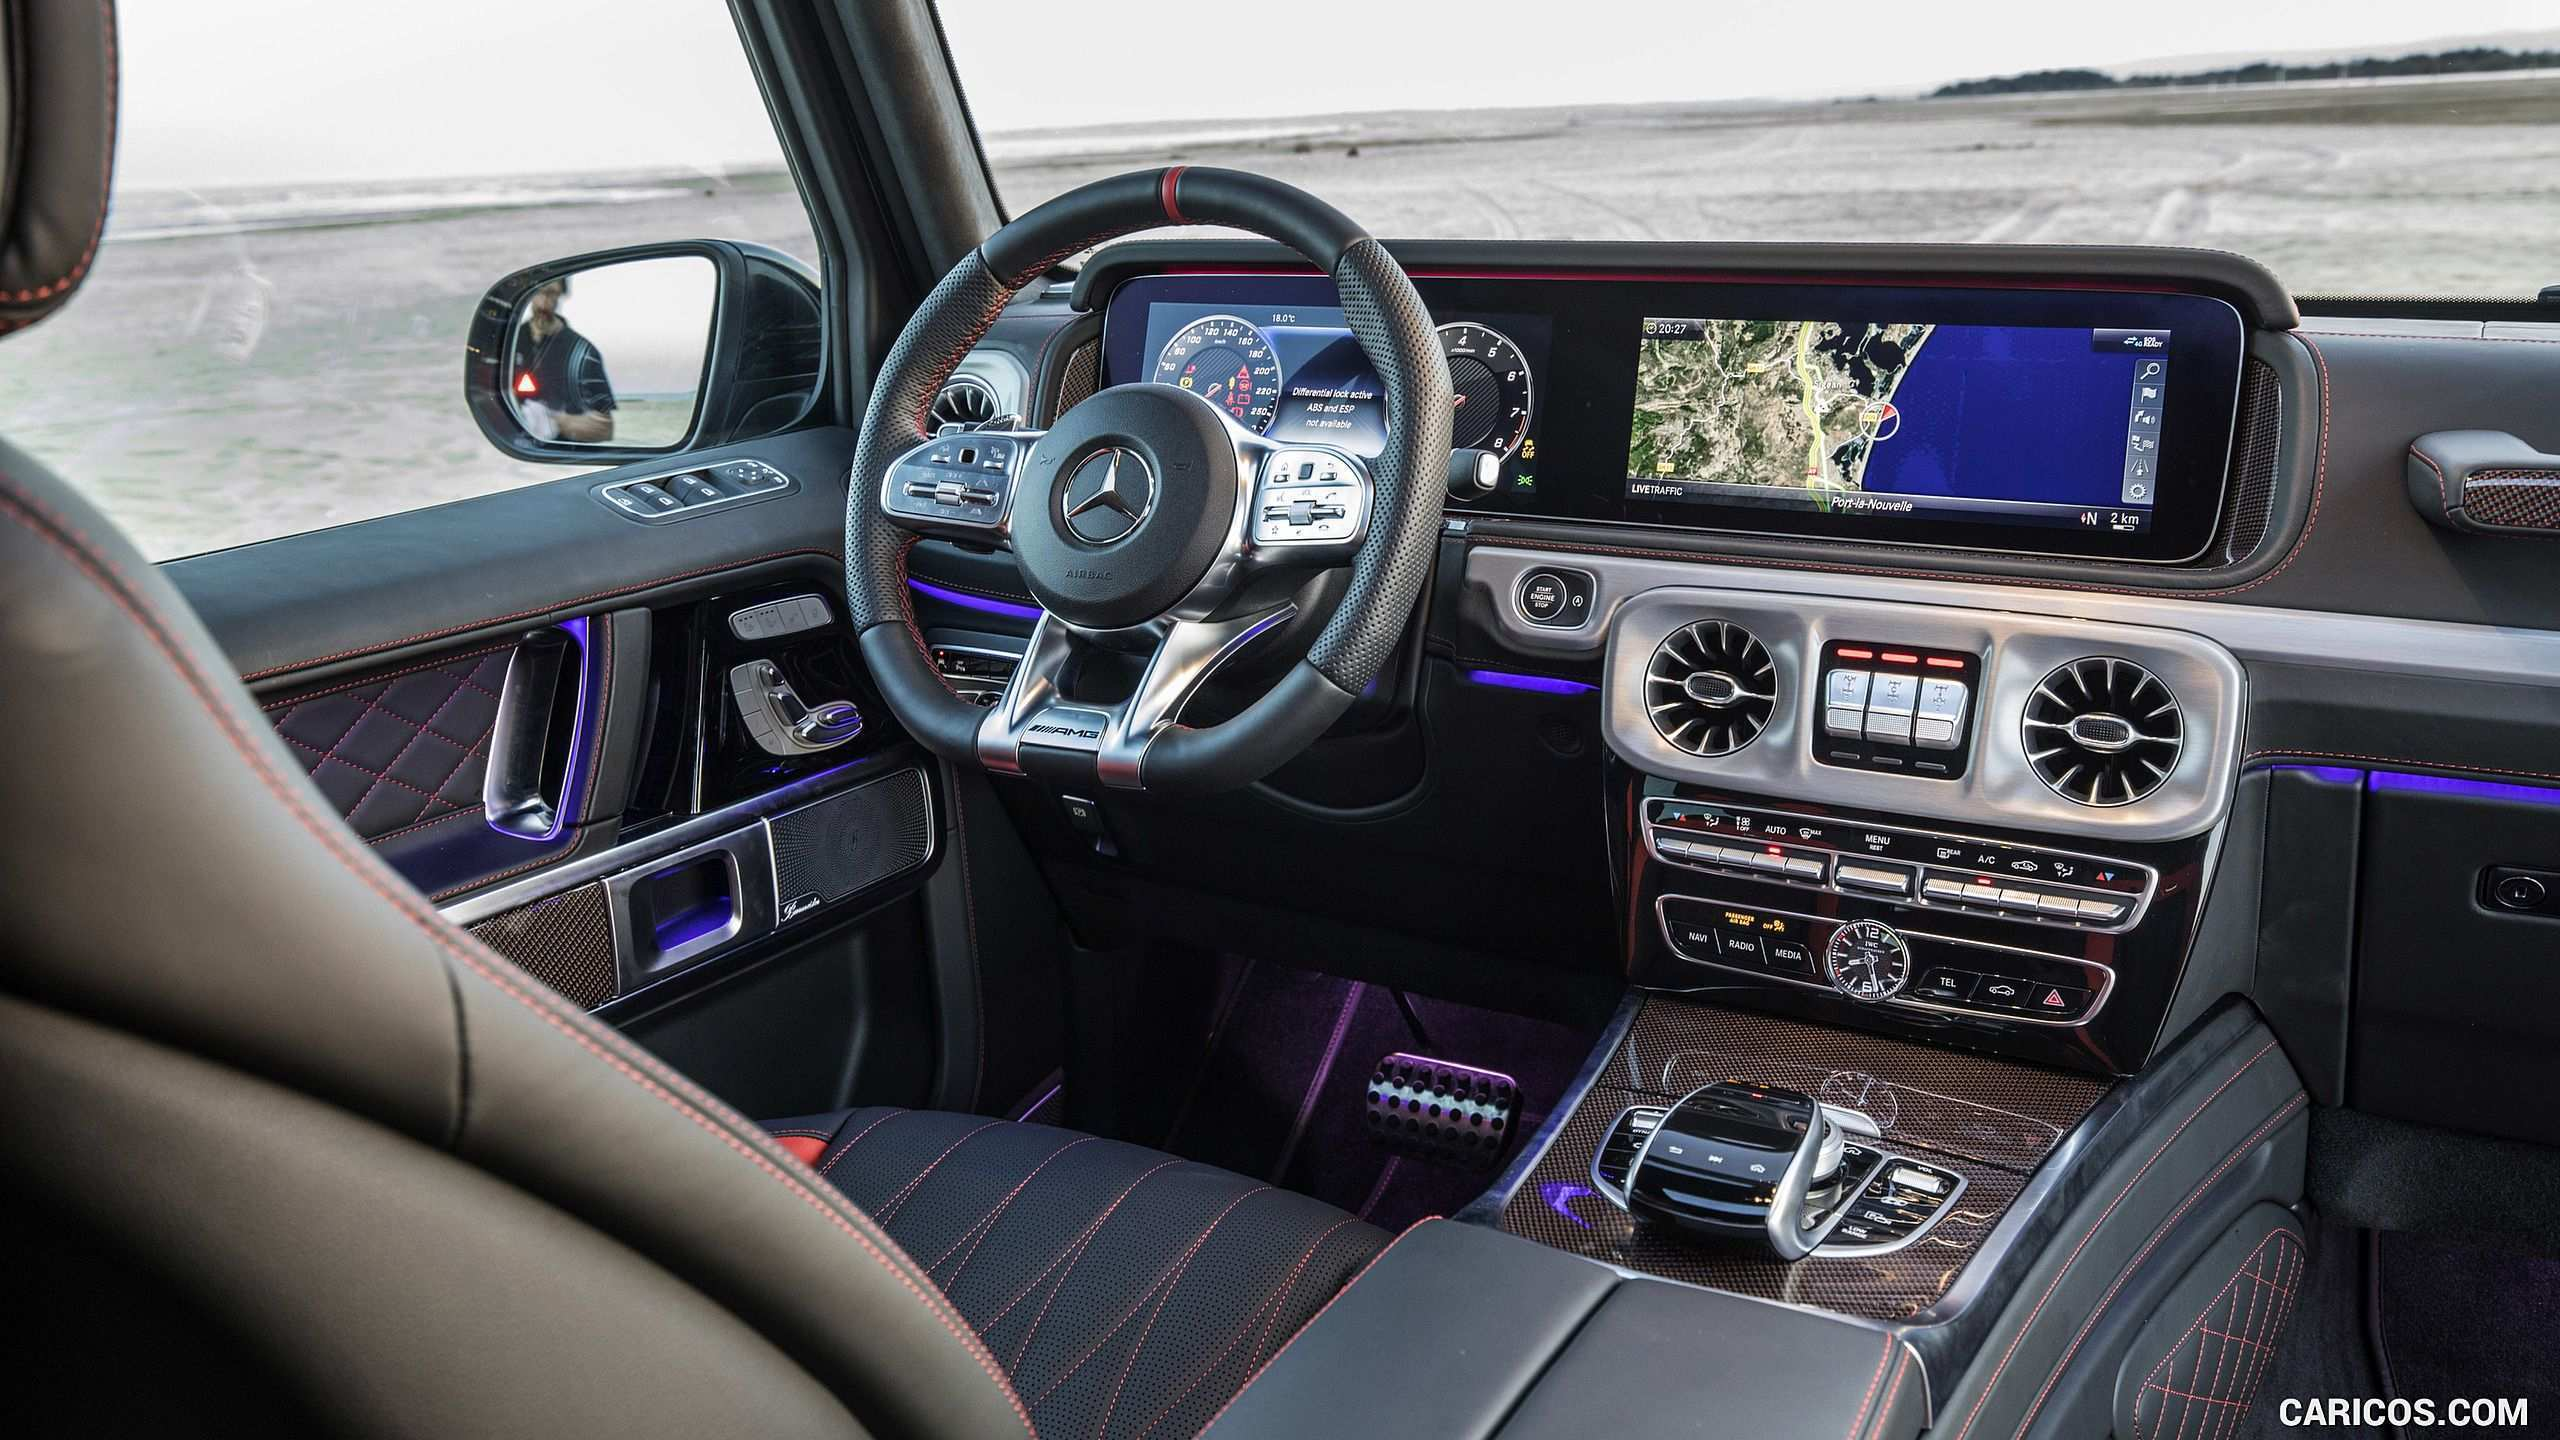 19 Great Mercedes Interior 2019 Images with Mercedes Interior 2019